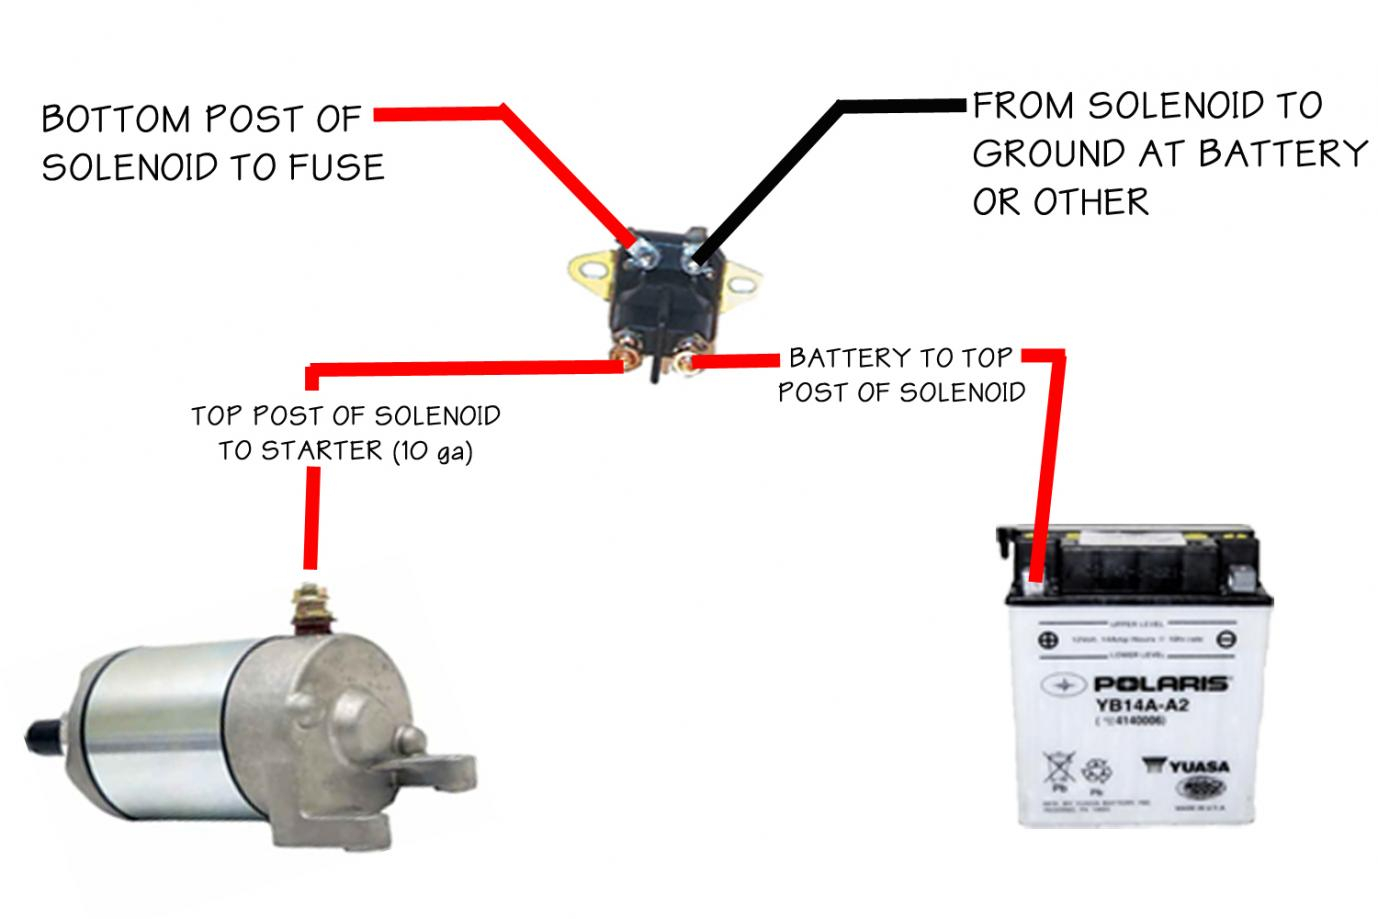 4 pole starter solenoid wiring diagram Download-Starter Solenoid Wiring  Diagram For Lawn Mower 1